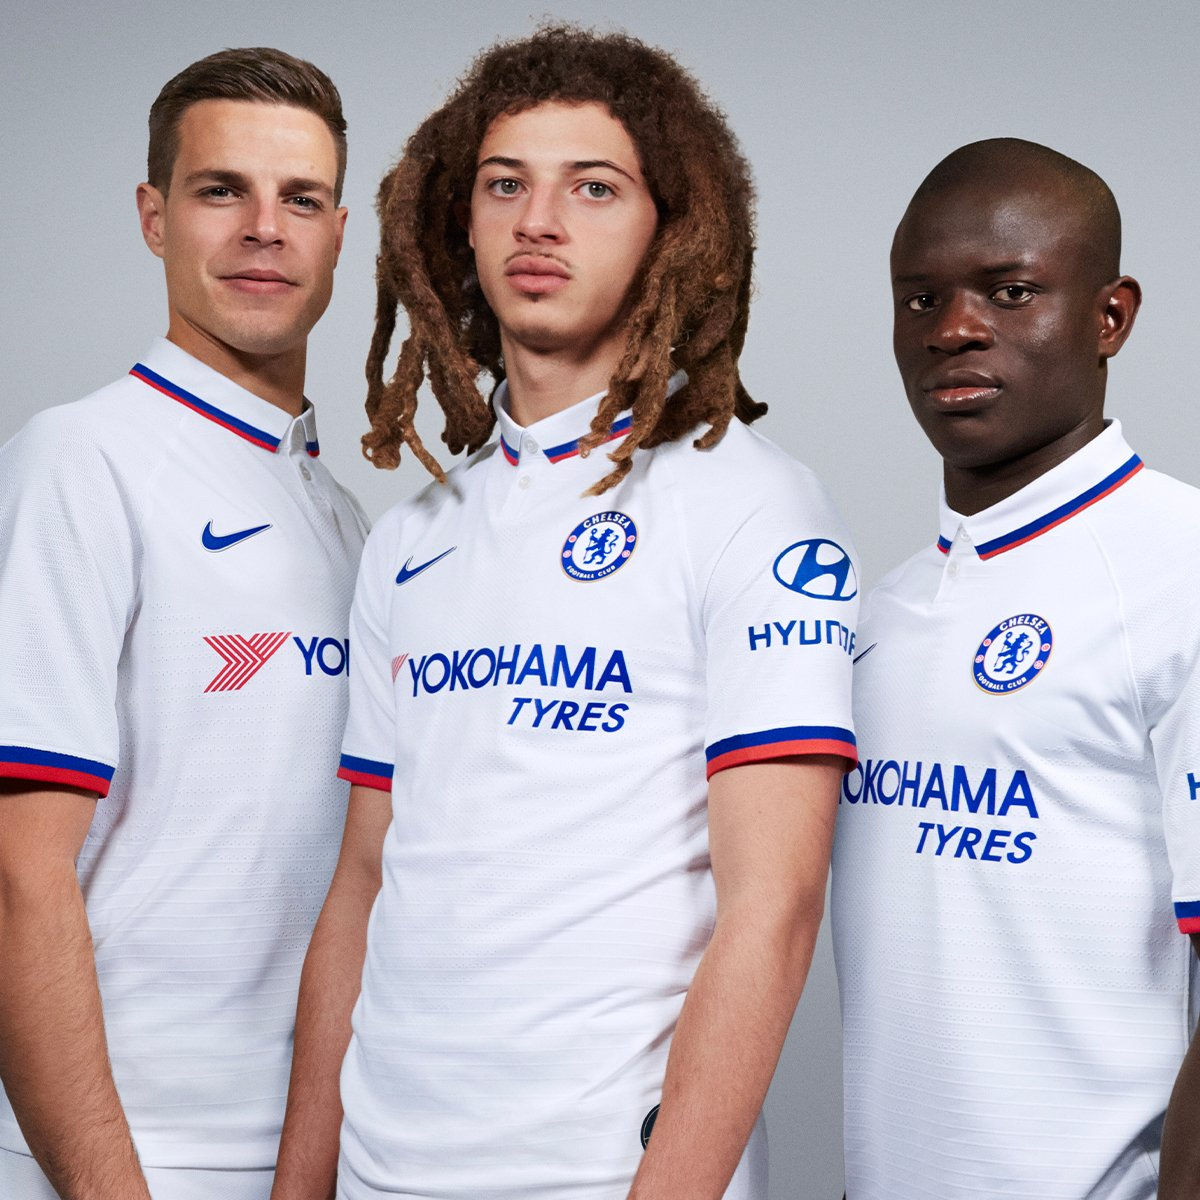 Chelsea Away Kit: The Blues Unveils Mod-Inspired Jersey For 2019/20 Season 5